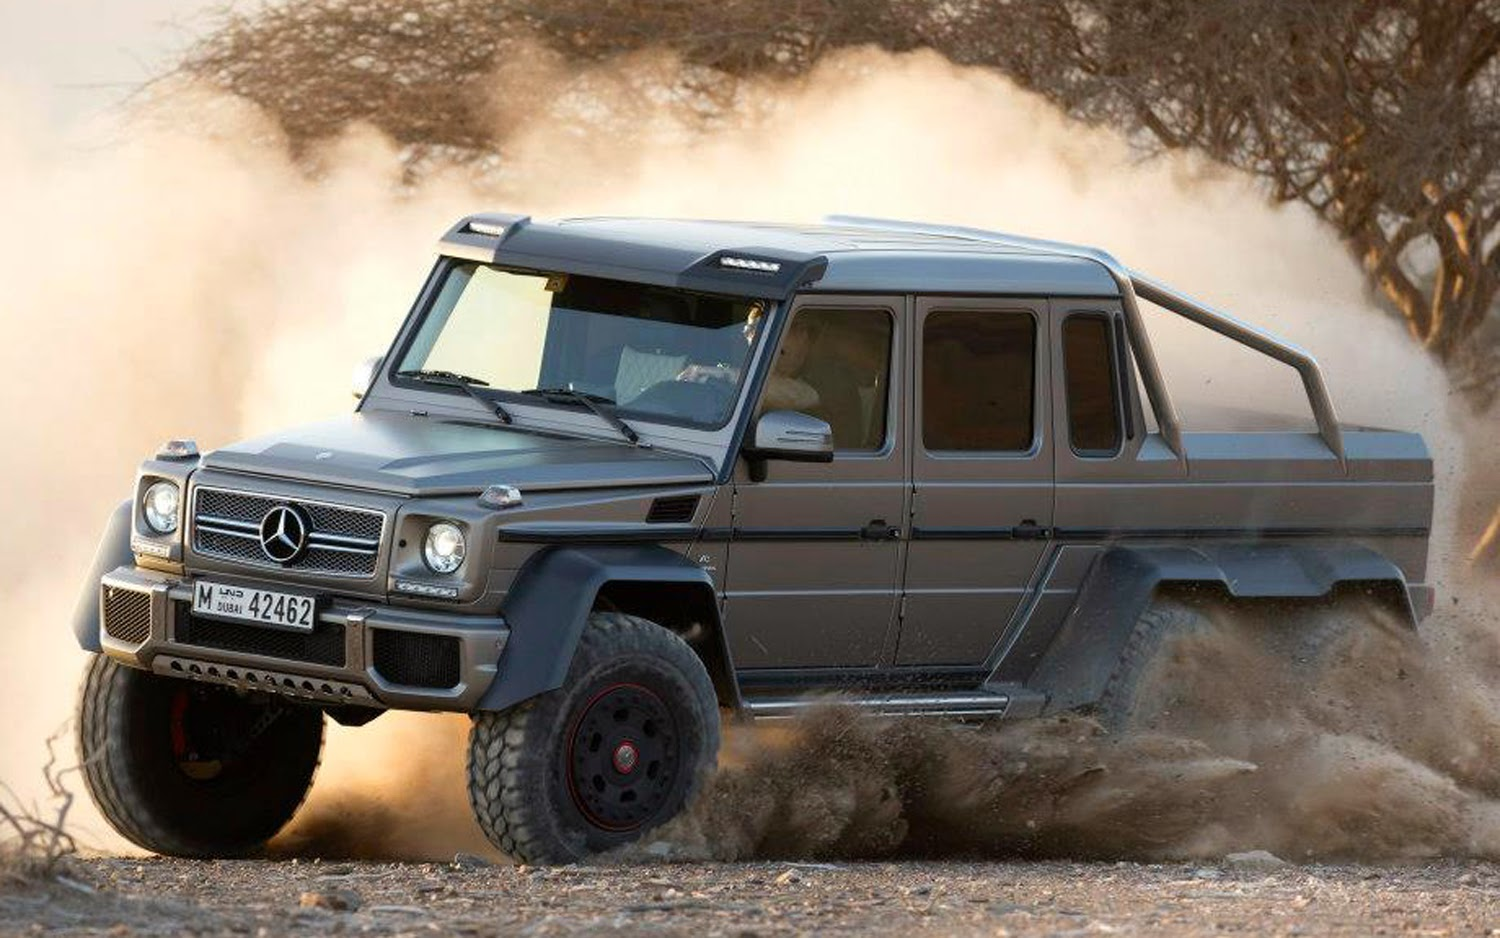 Mercedes Benz G Class 6x6 Car Information News